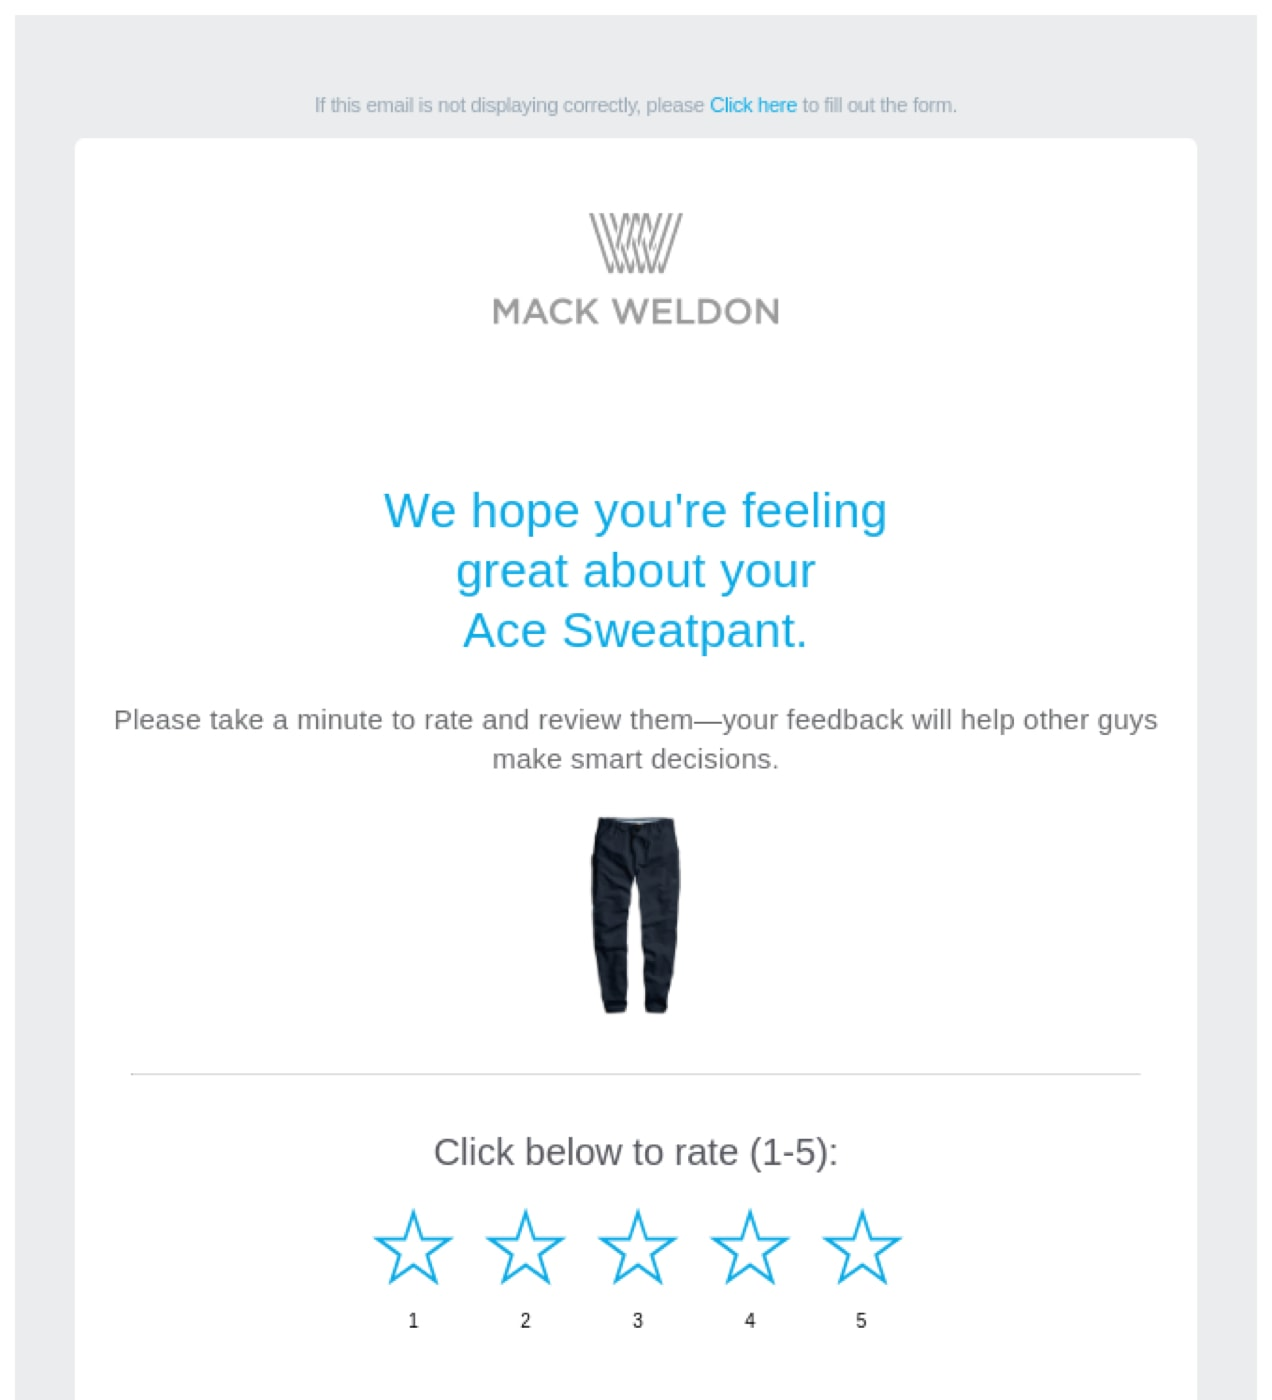 Mack Weldon email asking a customer for a review on the sweatpants they purchased